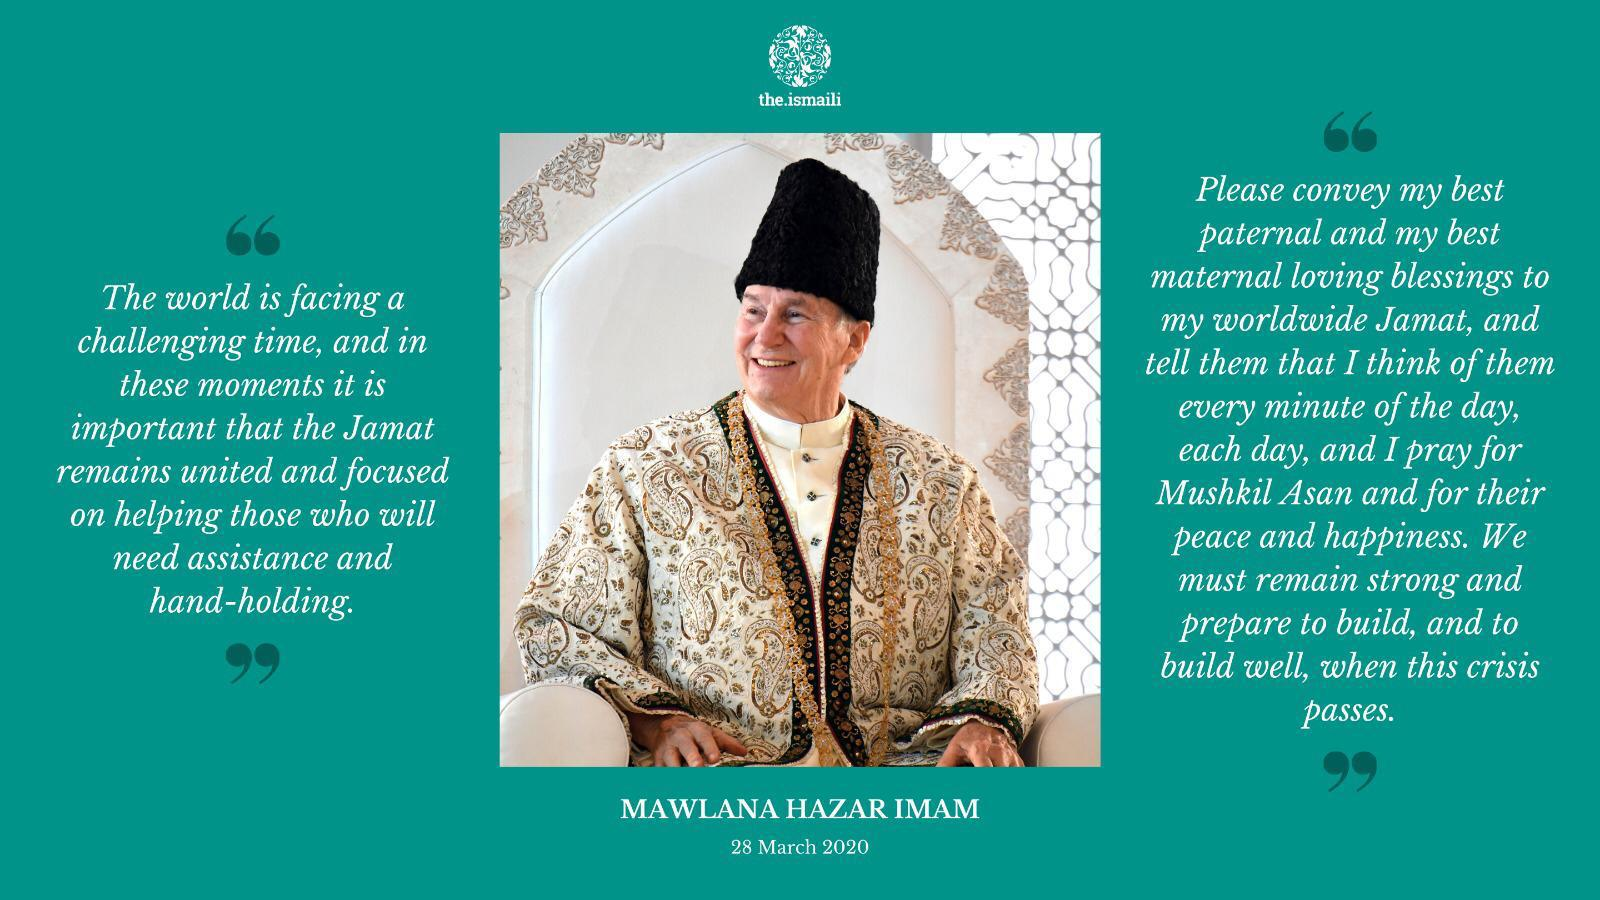 Mawlana Hazar Imam, His Highness the Aga Khan, showers his paternal and maternal blessings on his spiritual children around the world in light of the  present crisis